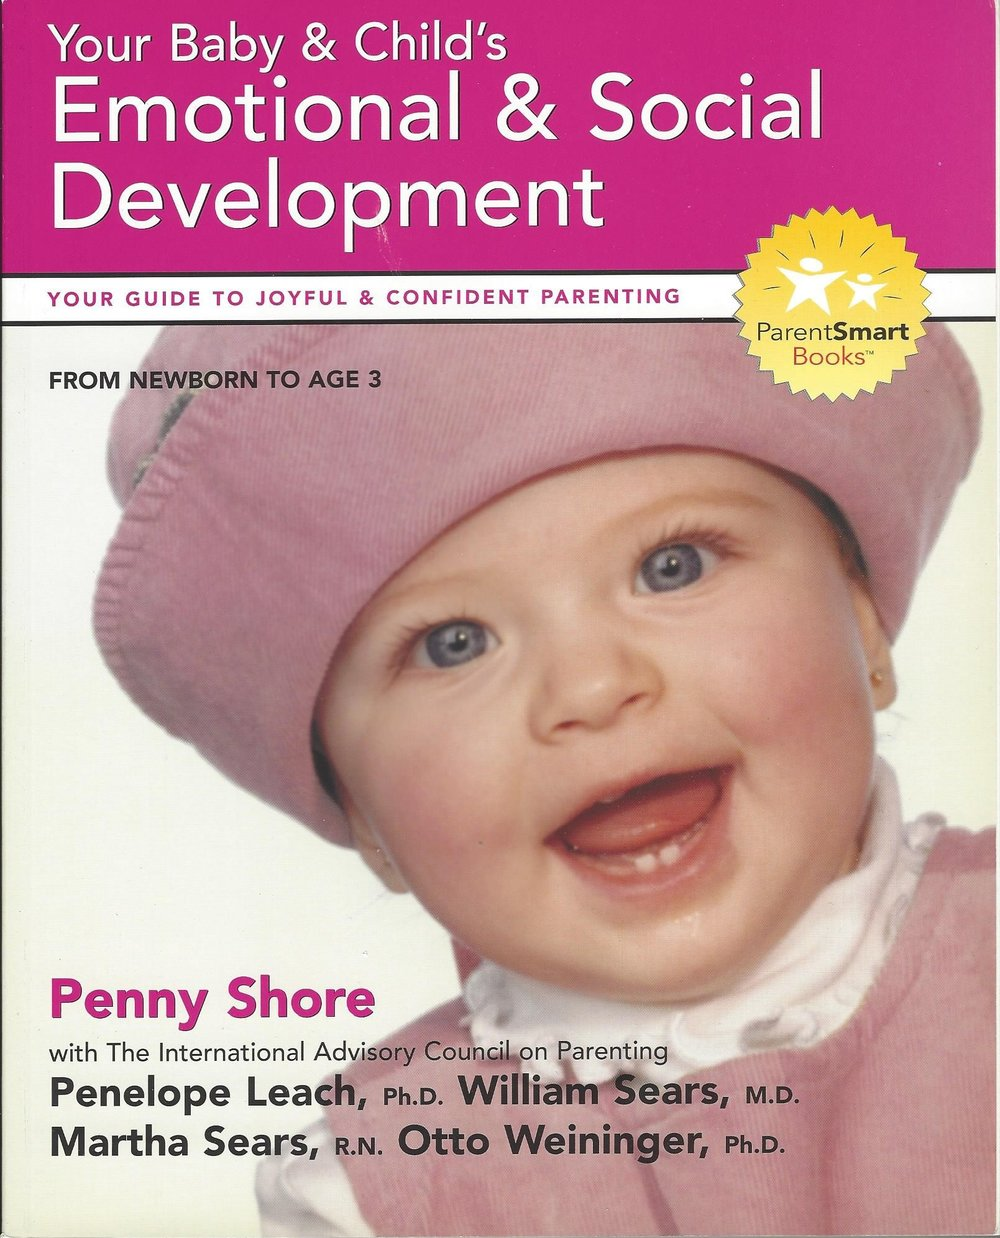 - Your Baby & Child's Emotional & Social DevelopmentBy Penny Shore with Penelope Leach, Ph.D., William Sears, M.D.,Martha Sears, R.N., Otto Weininger, Ph.D.